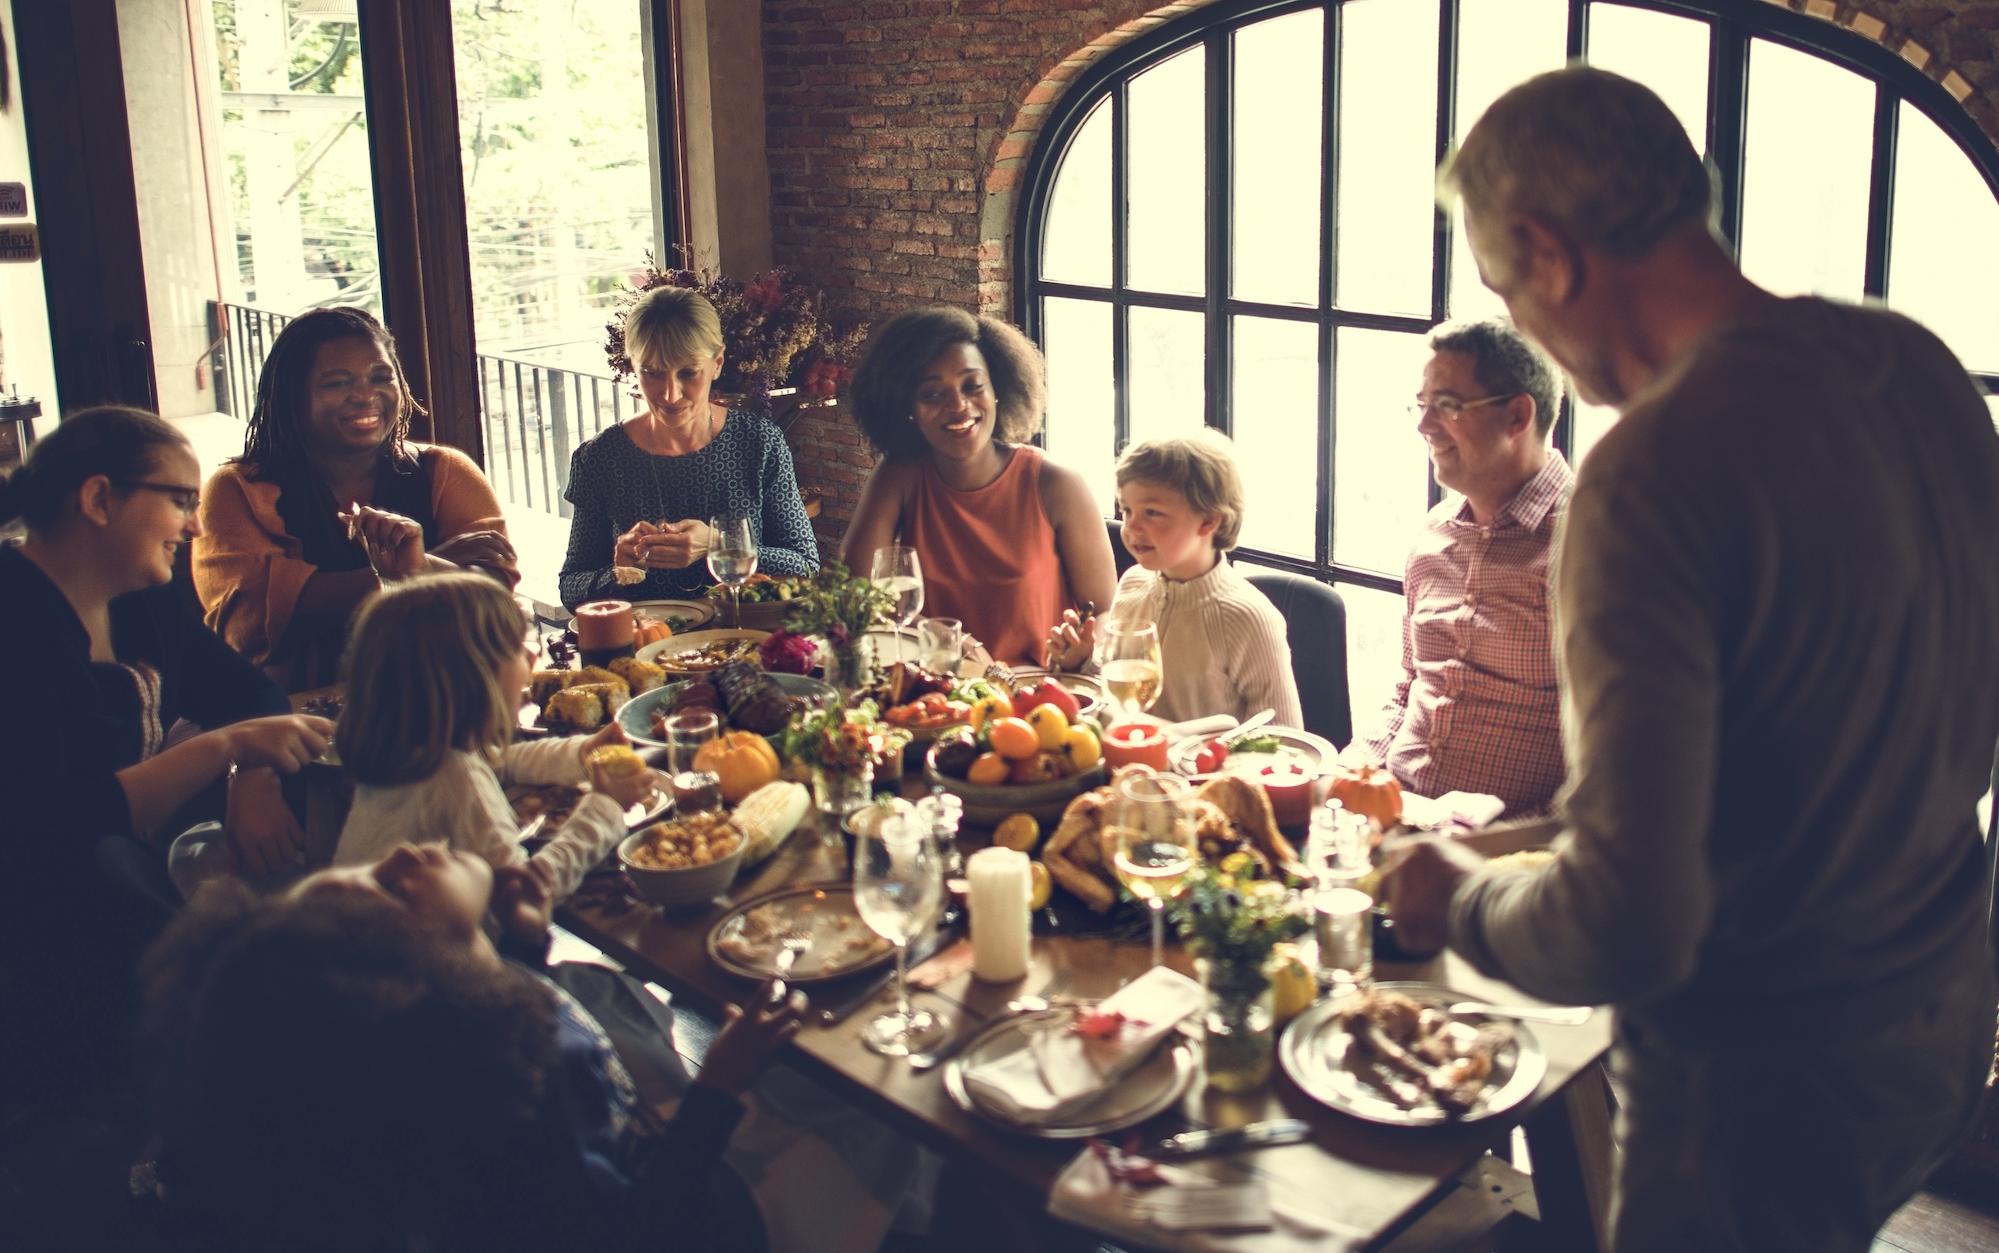 Experts led by Washington State University are reporting that politics have become an unwelcome guest to Thanksgiving dinner. The researchers found that Thanksgiving visits were around 50 minutes shorter following the 2016 presidential election.